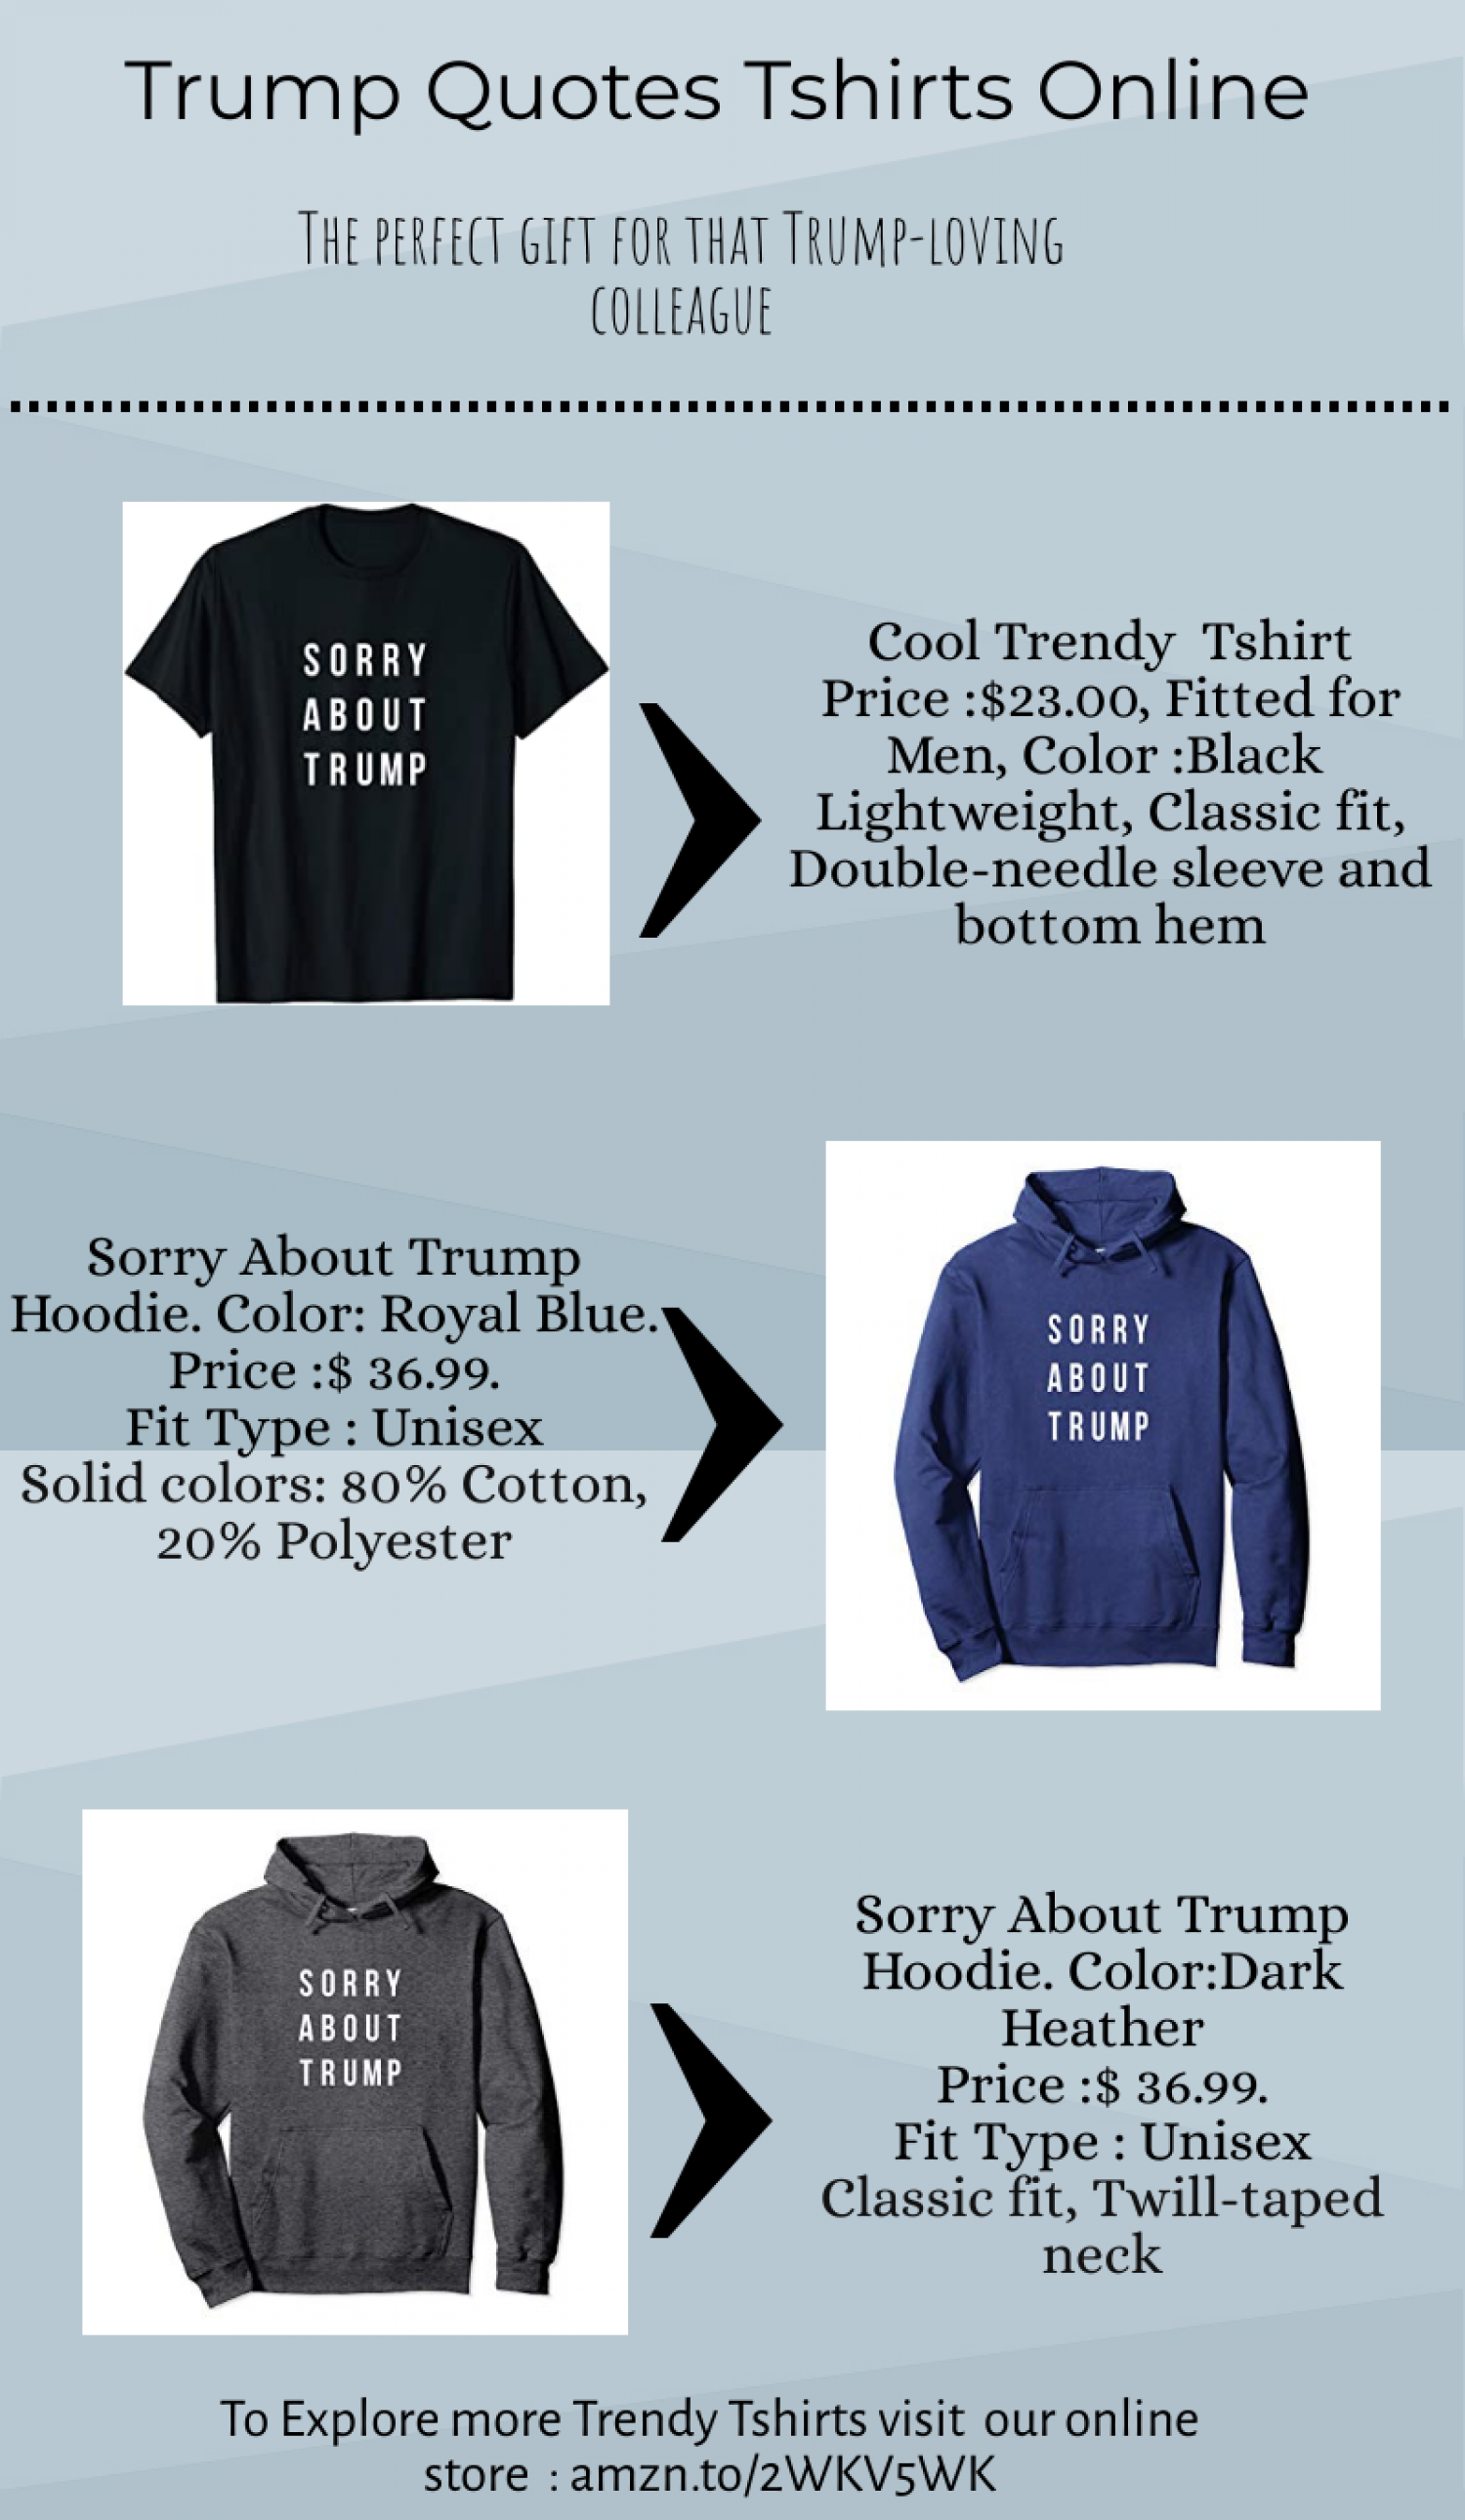 Trump Quotes Tshirts Infographic